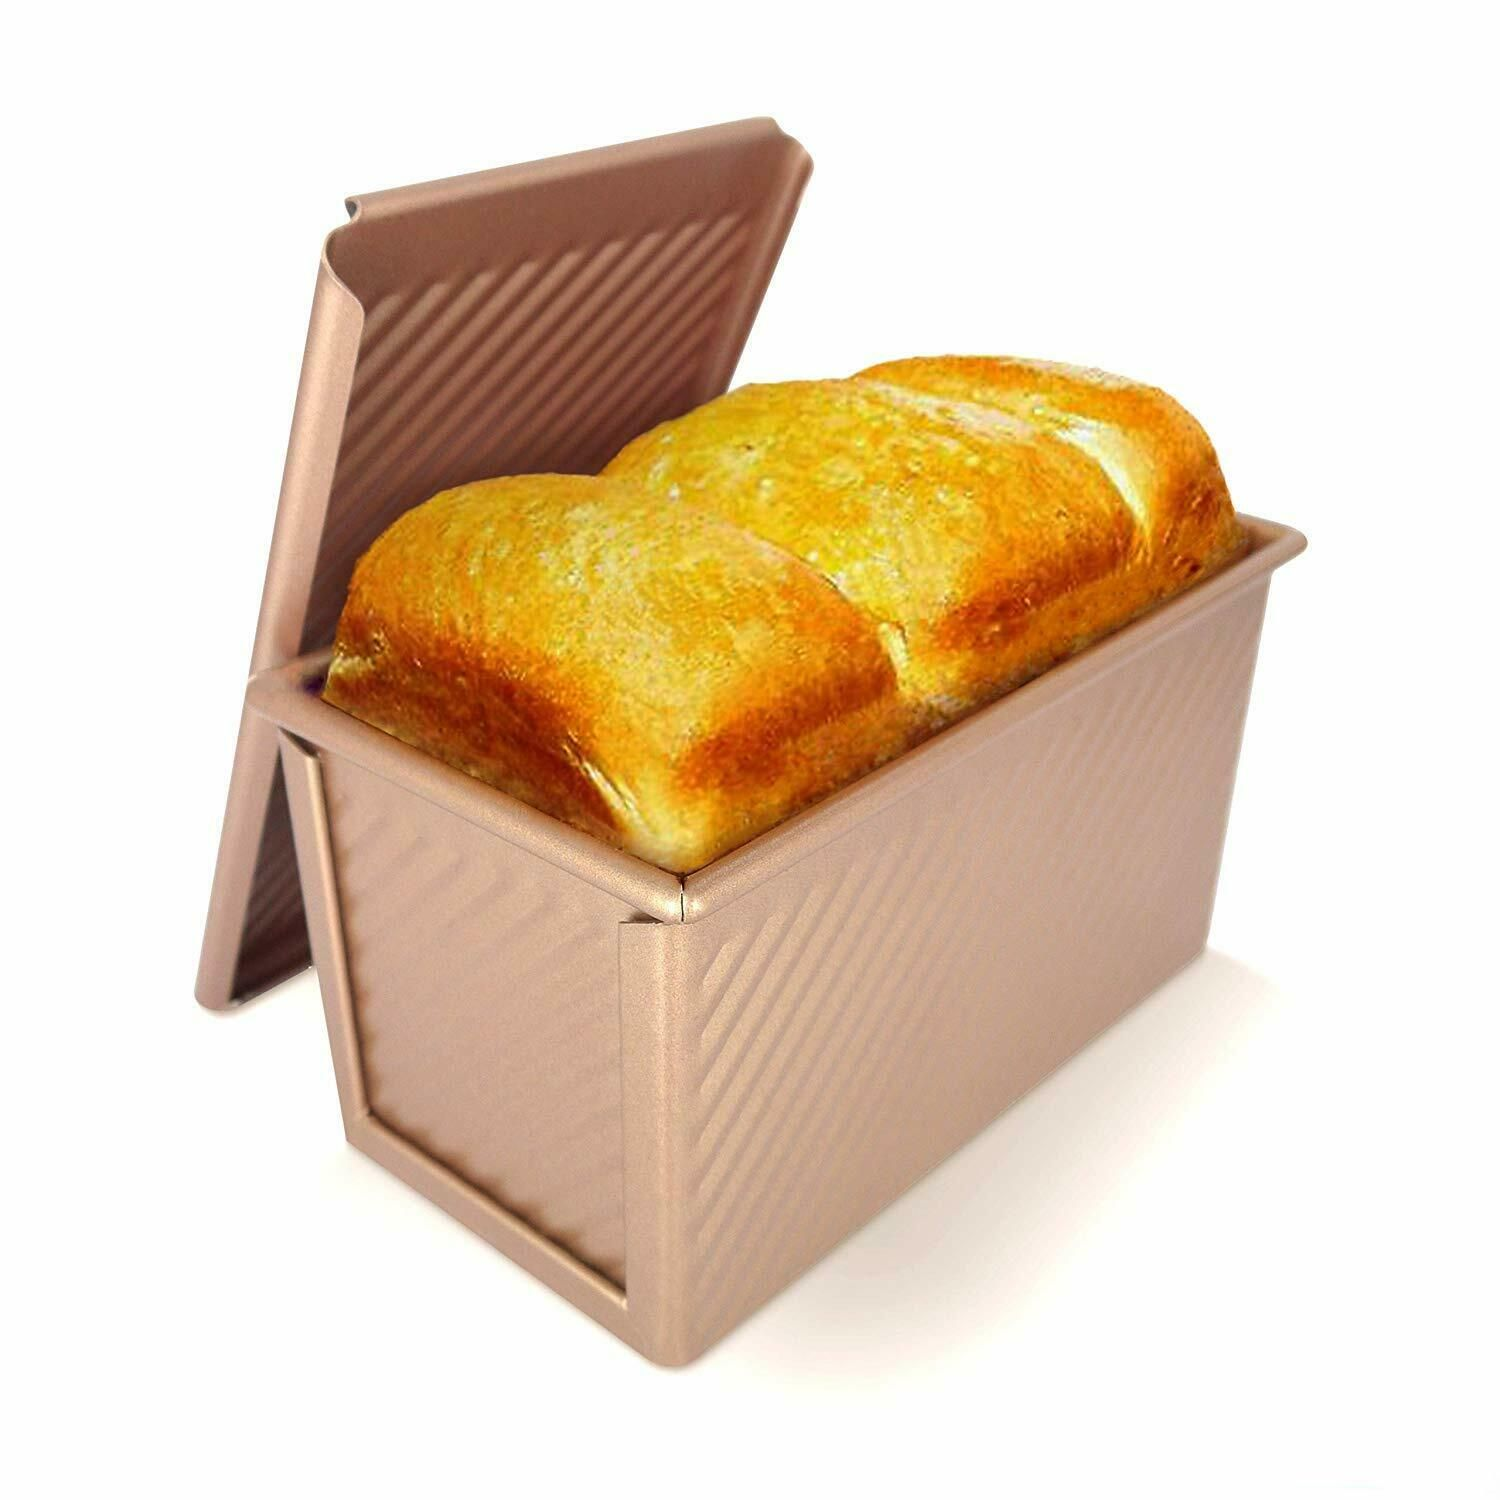 Kaychef Pullman Loaf Pan With Lid For Baking Bread Reinforced